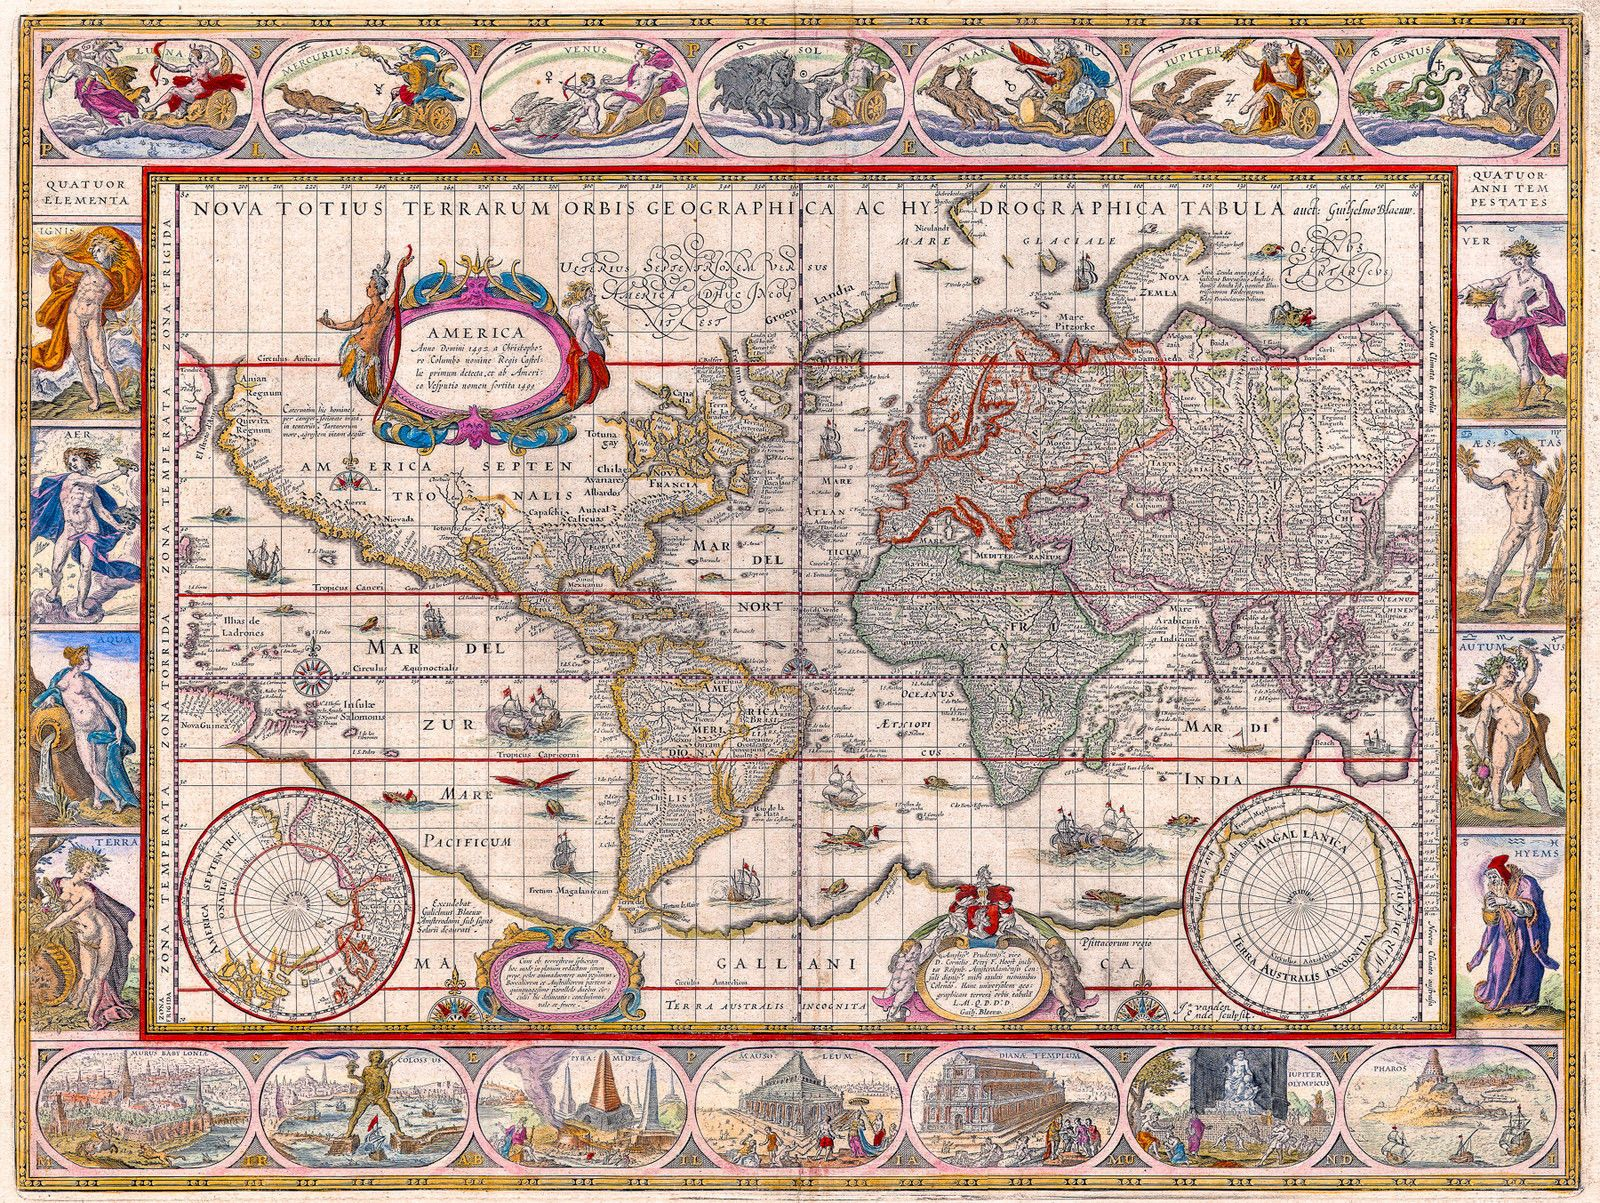 antique world map old vintage map 1571 fade resistant hd art print or